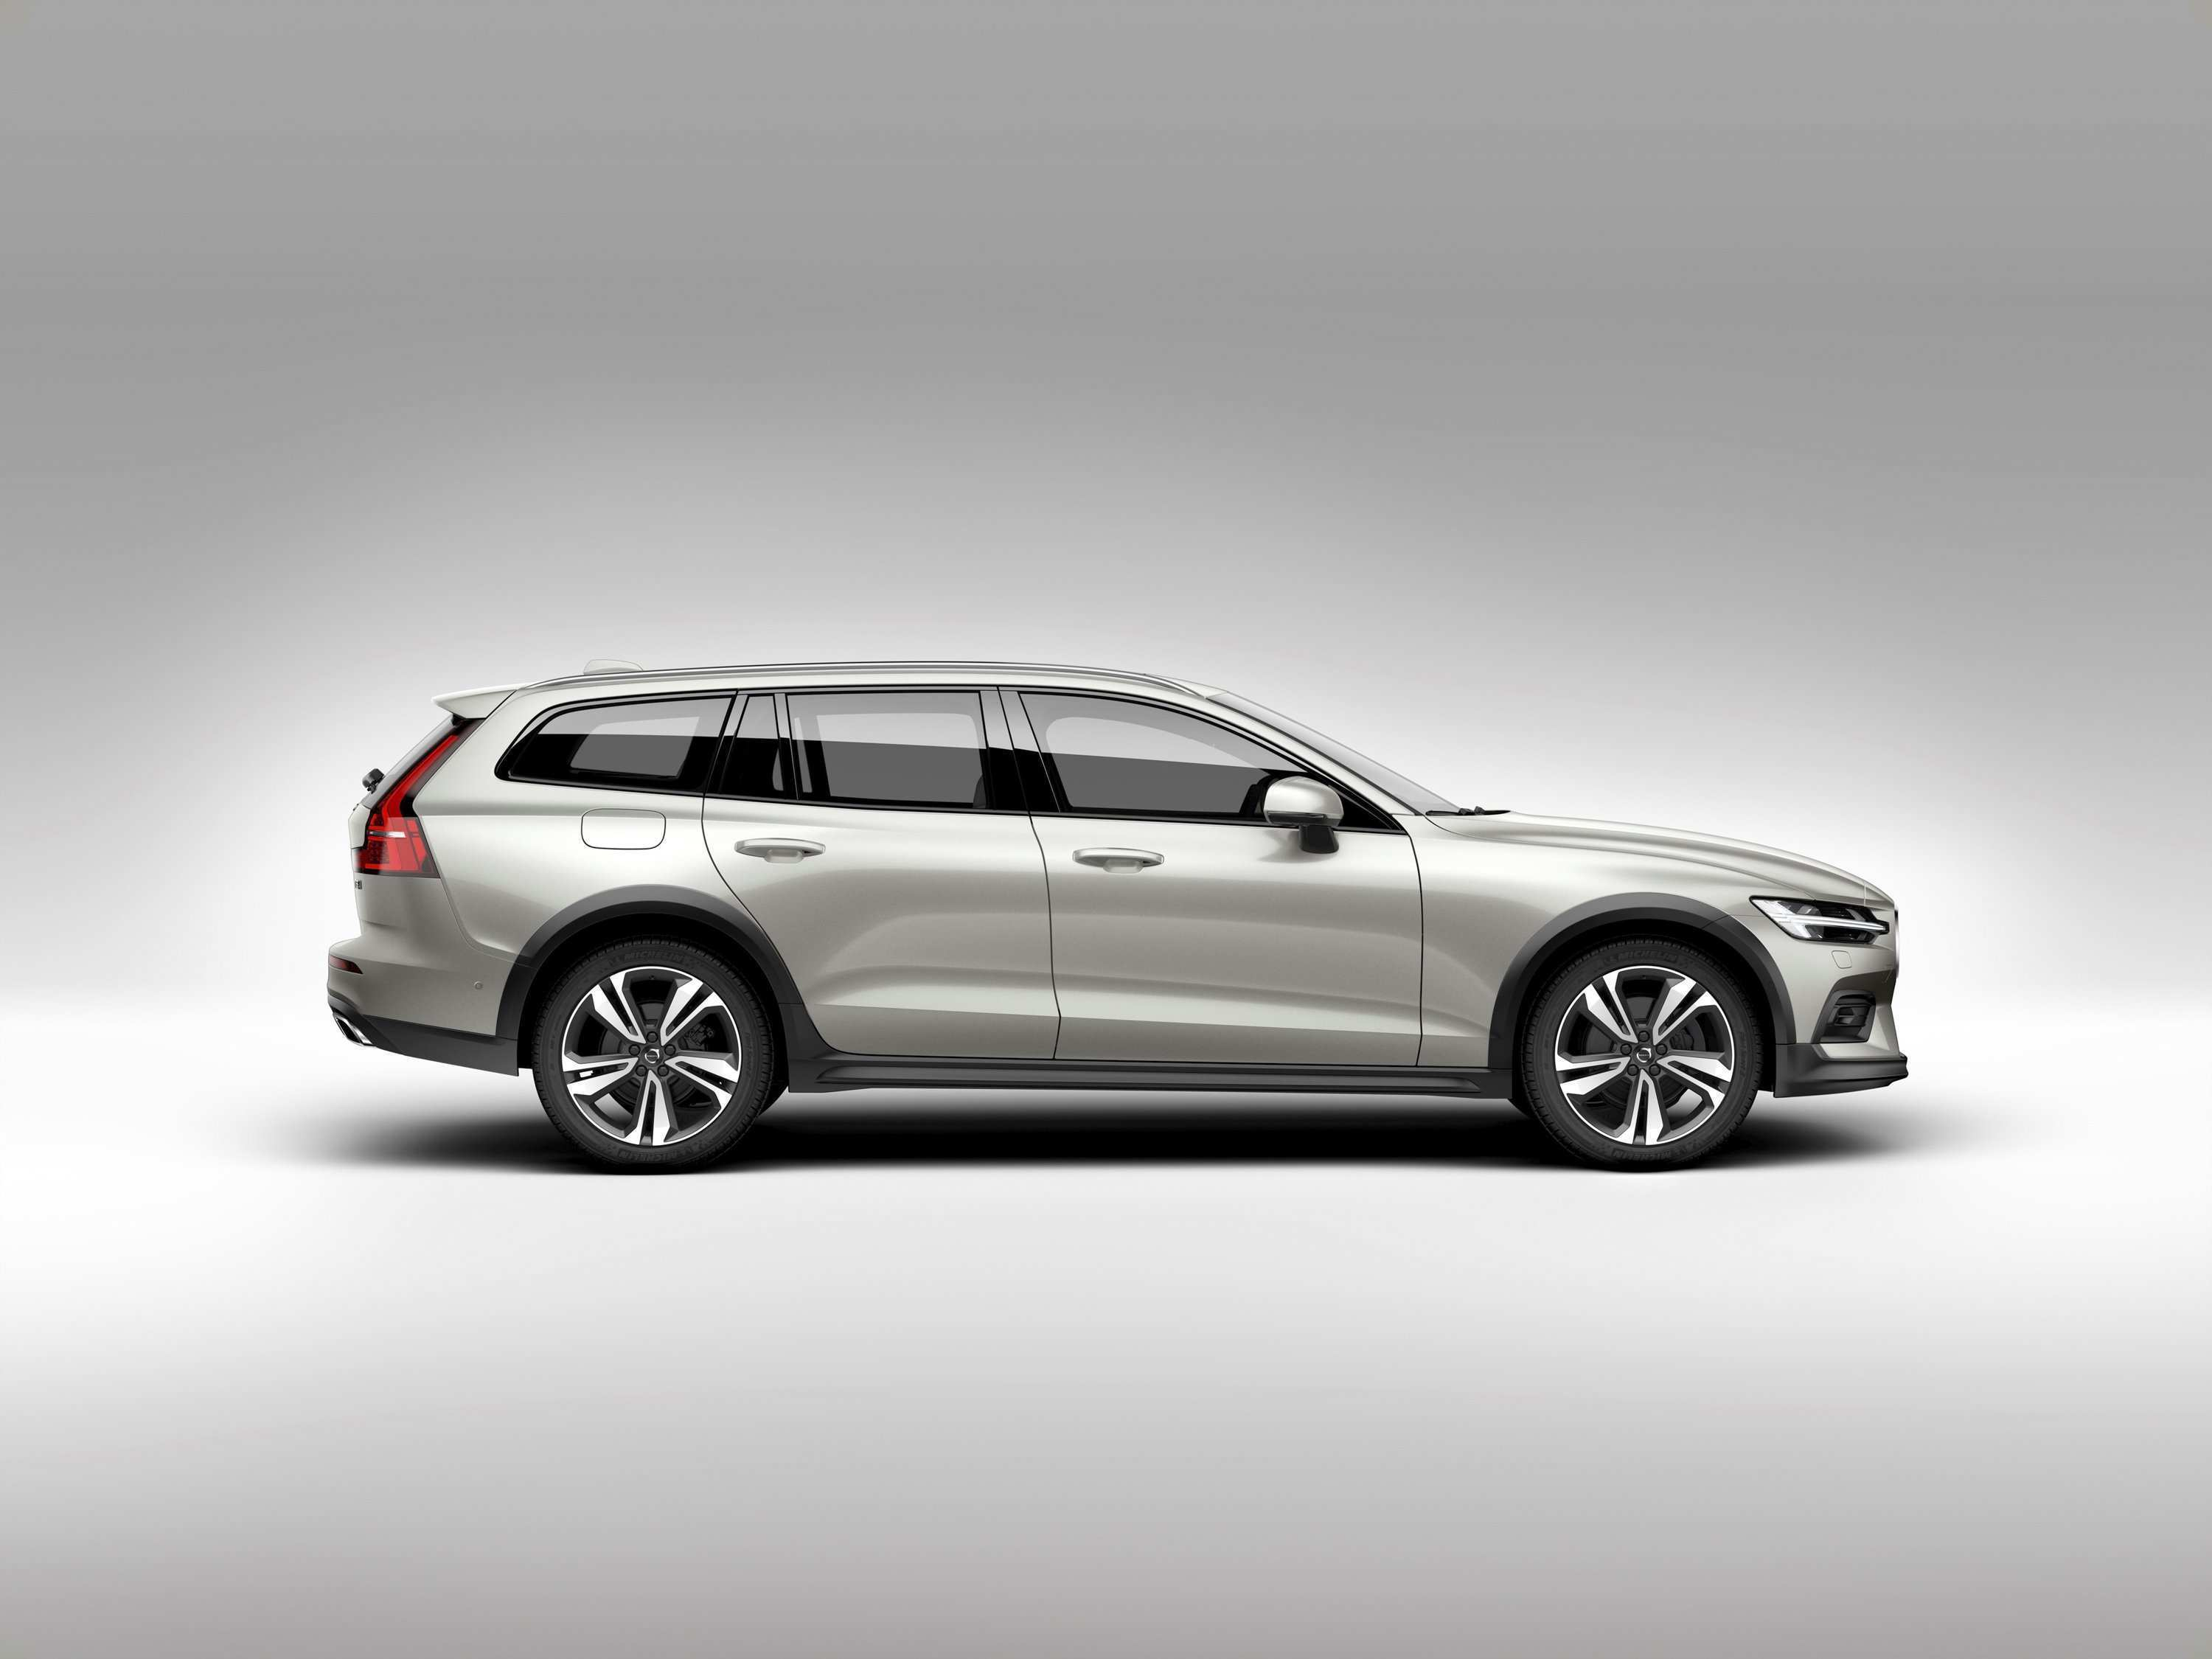 99 The 2019 Volvo Xc70 New Generation Wagon Pictures